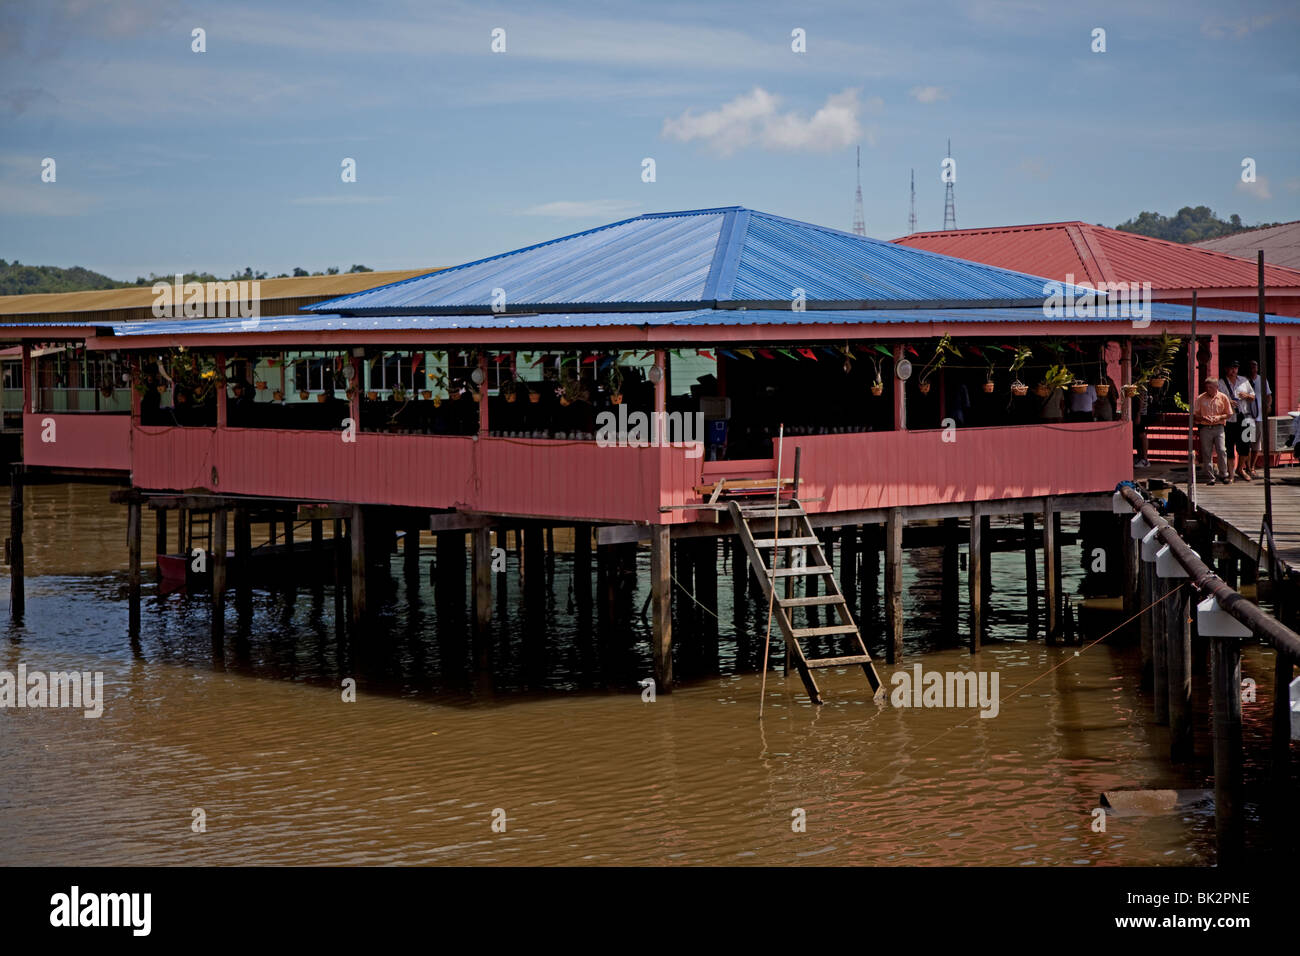 Kampong Ayer world's largest river village, Bandar Seri Begawan, Brunei. - Stock Image